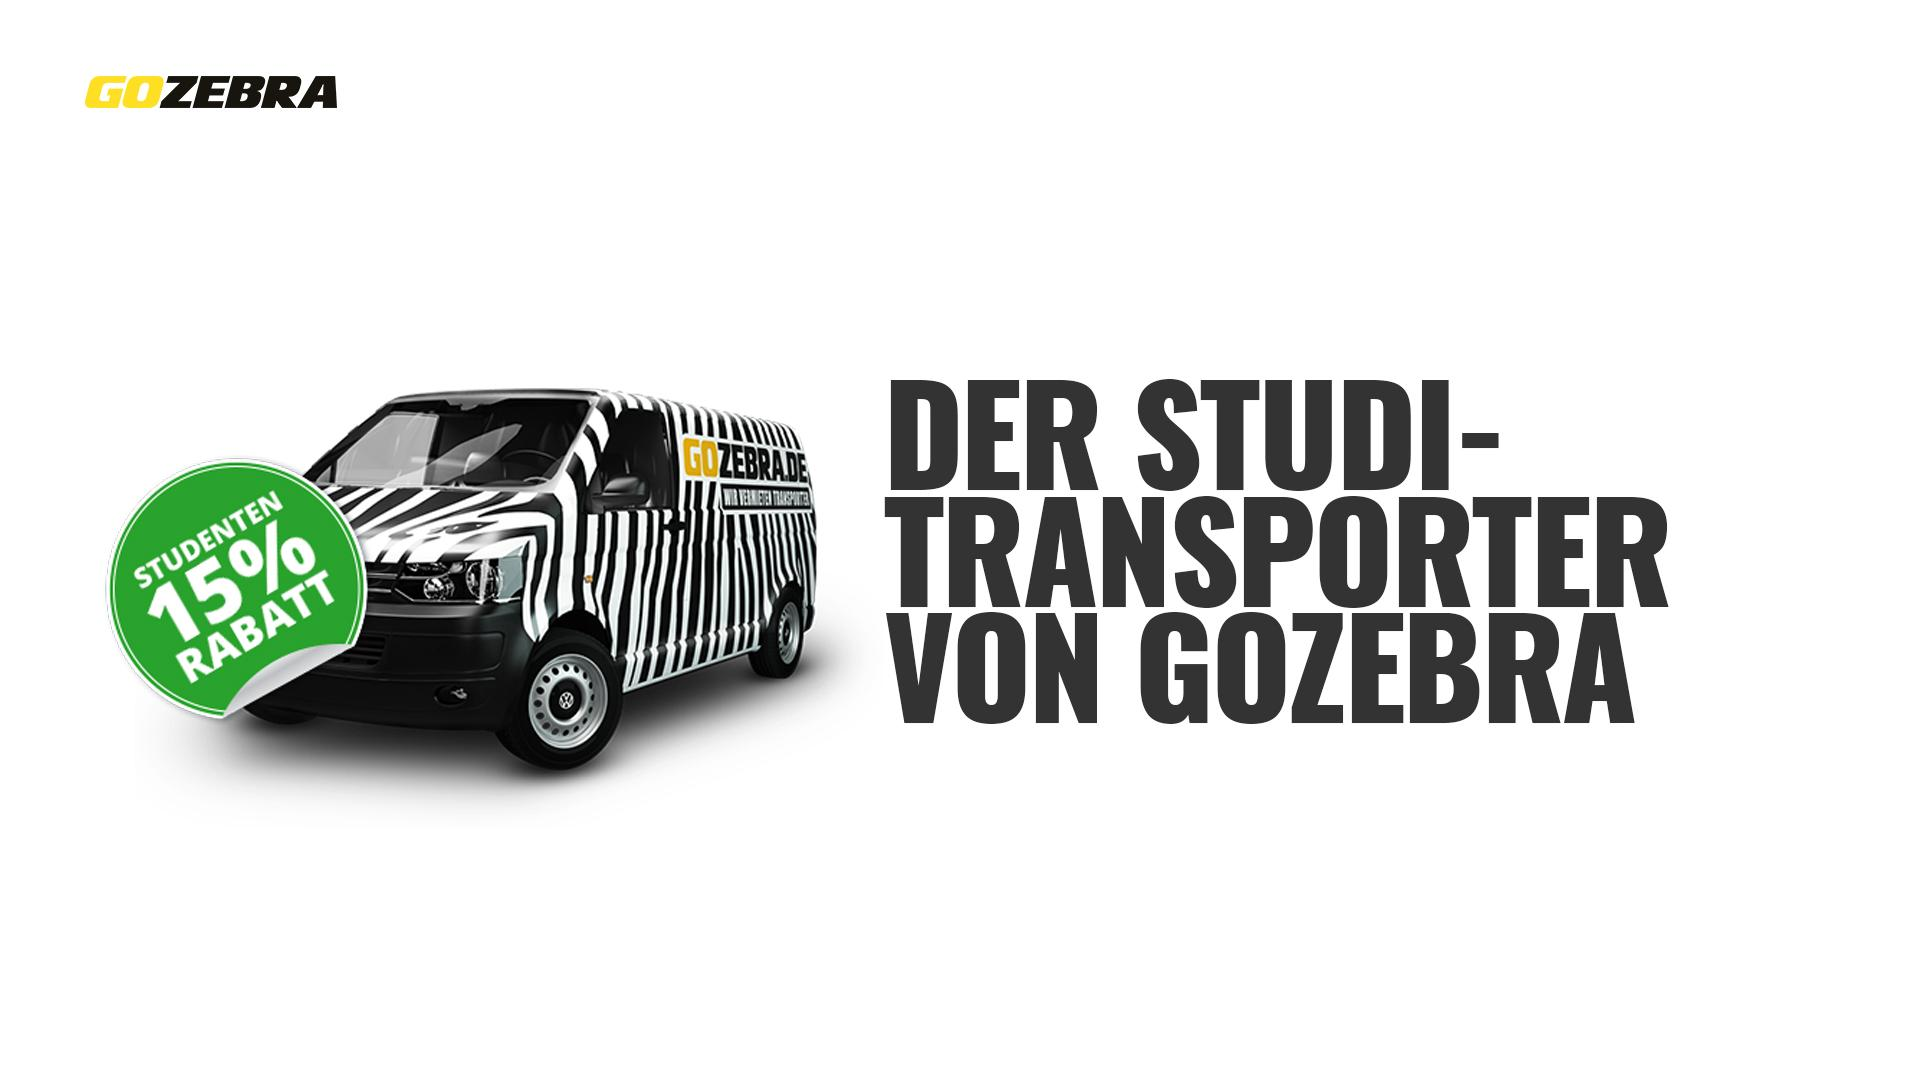 studitransporter transporter mieten bei gozebra. Black Bedroom Furniture Sets. Home Design Ideas